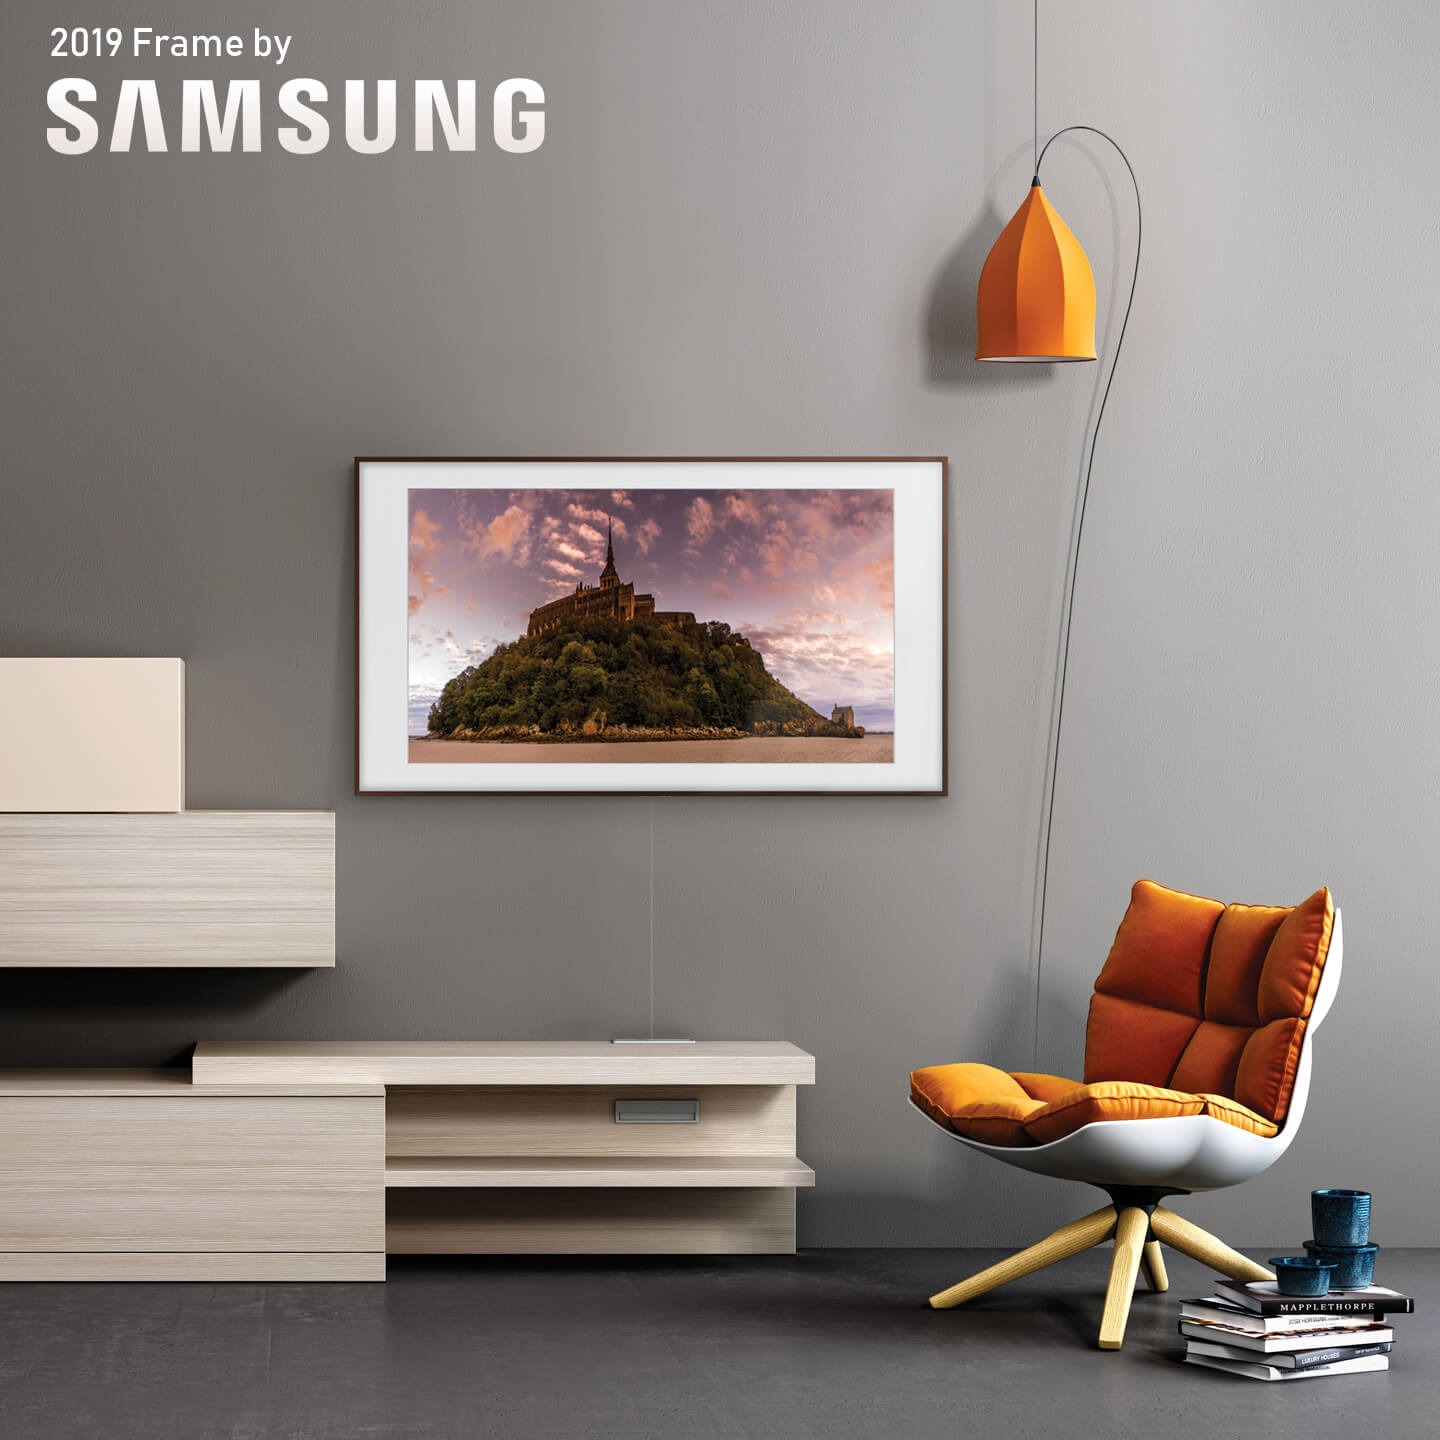 Samsung TV 2019 model